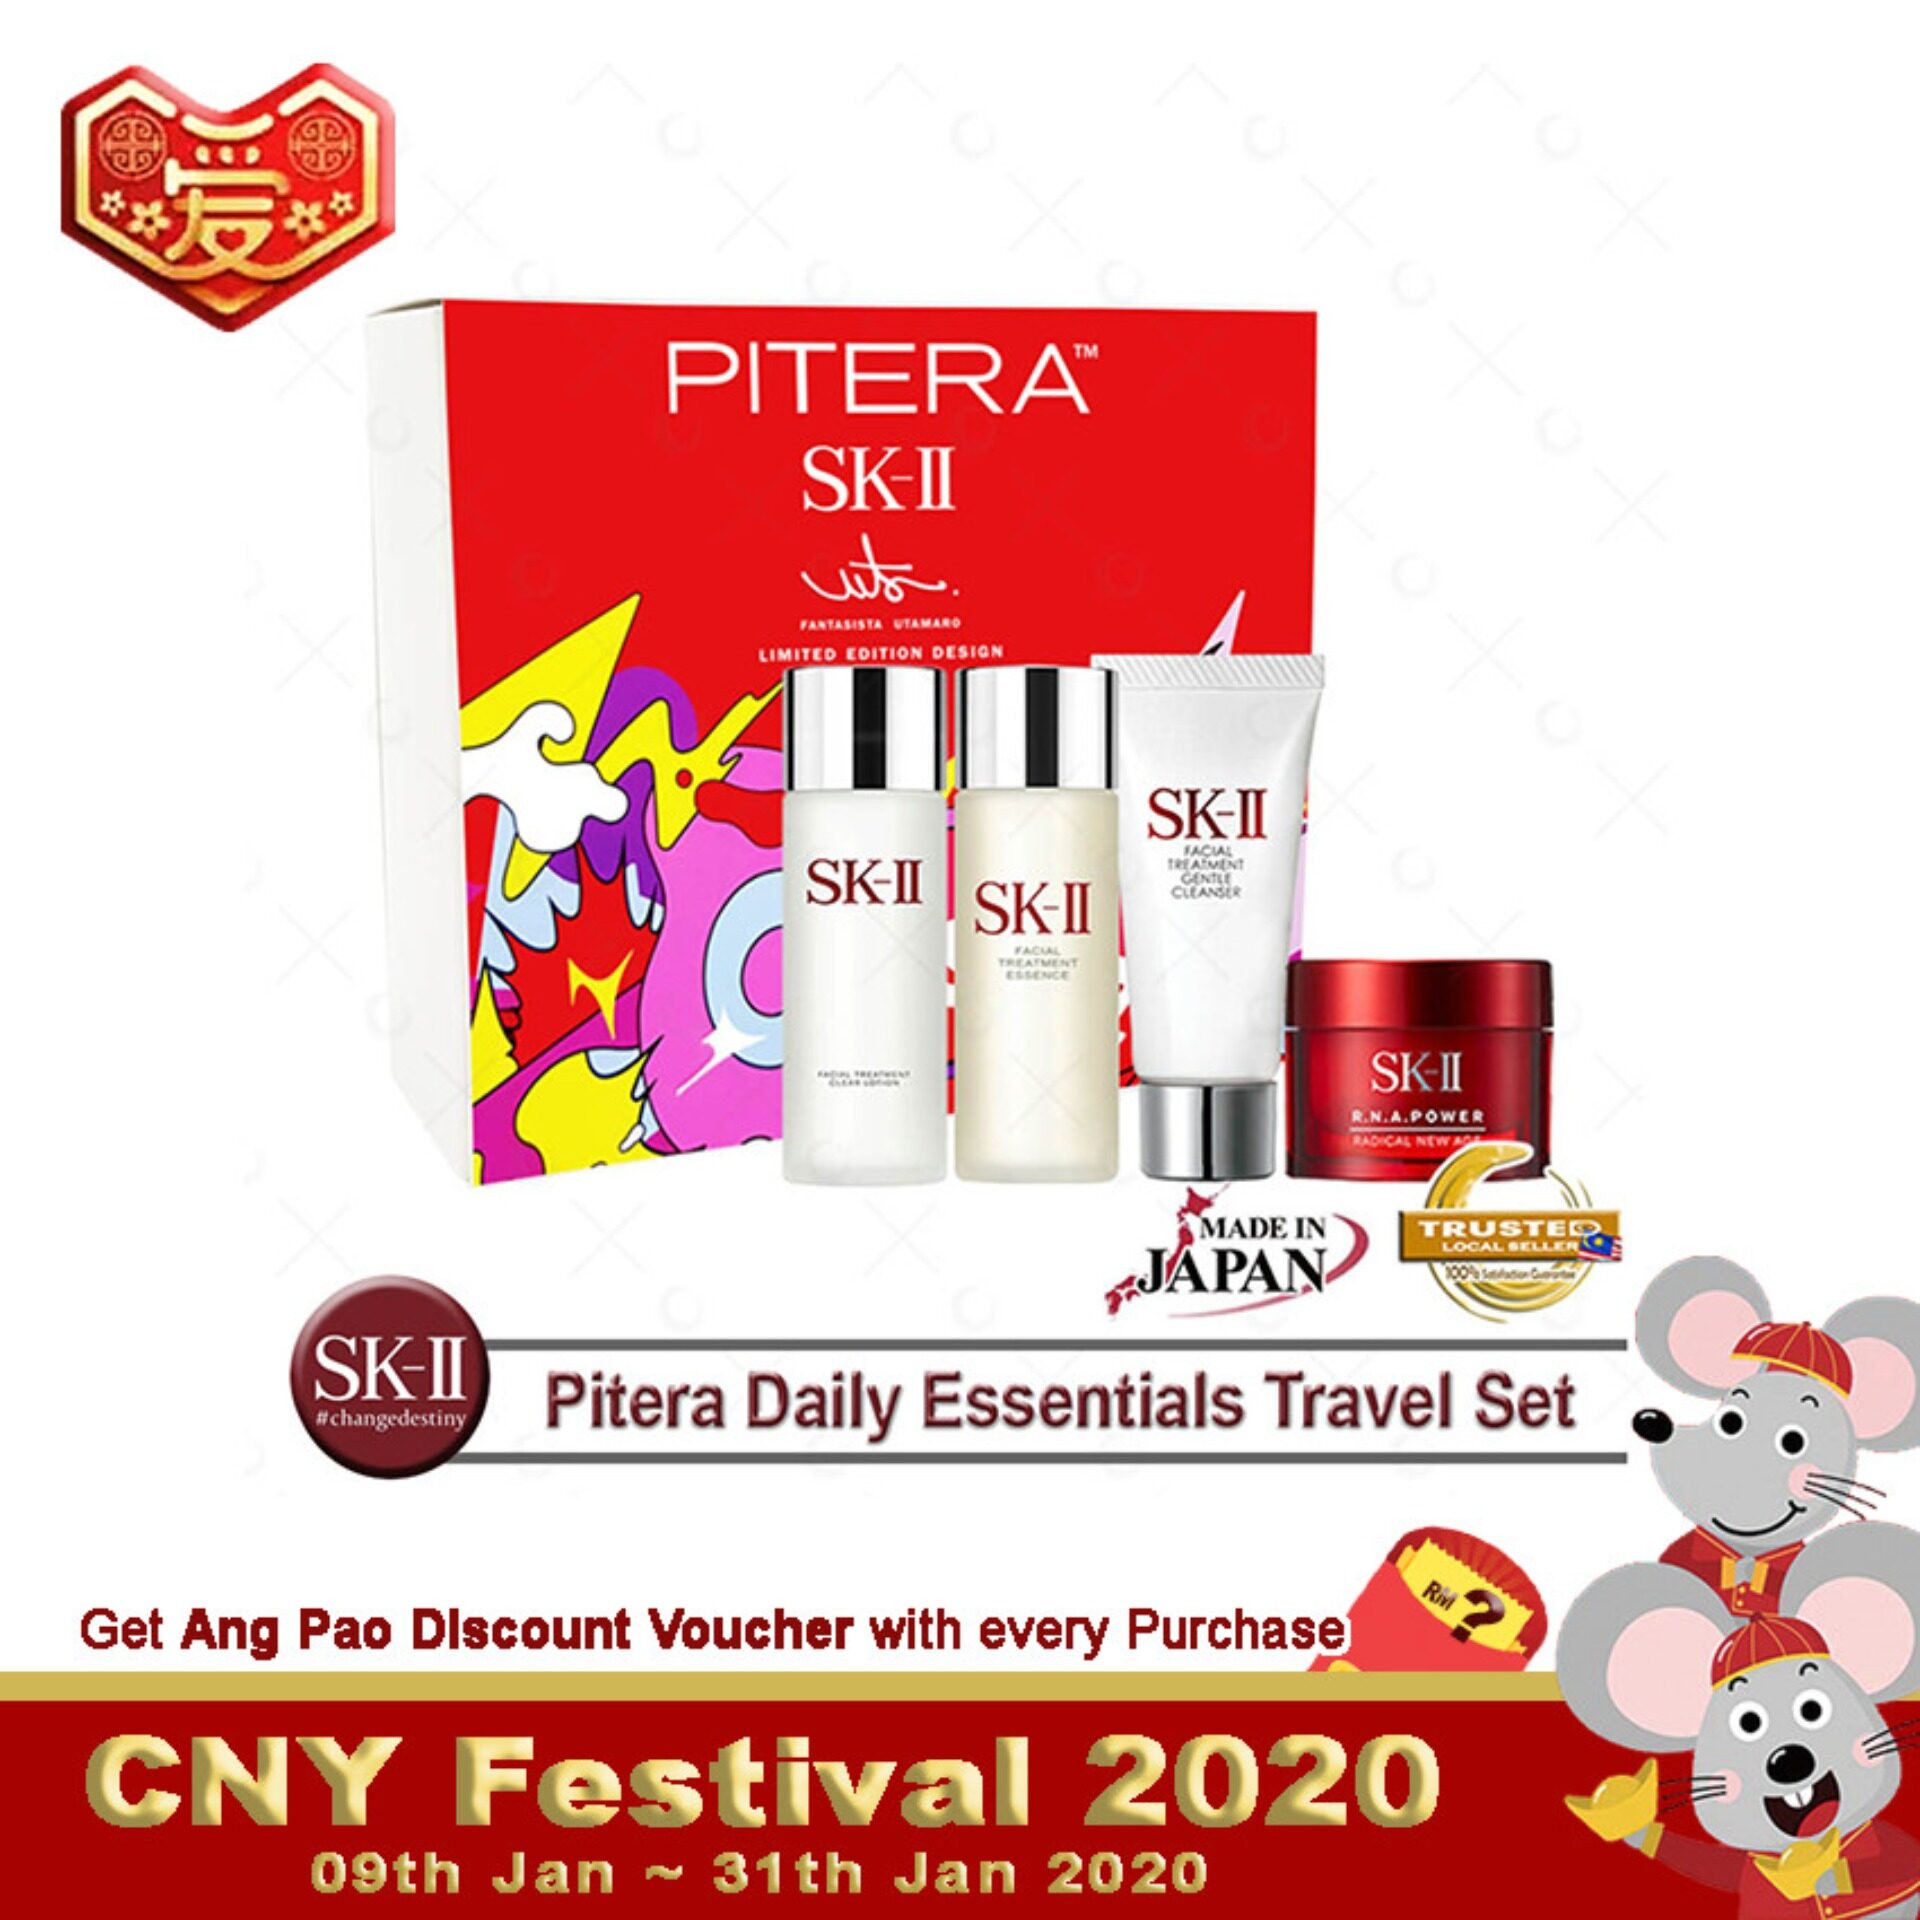 SK-II Pitera Daily Essentials Travel Set 1 (4 items FREE Mystery Gift)